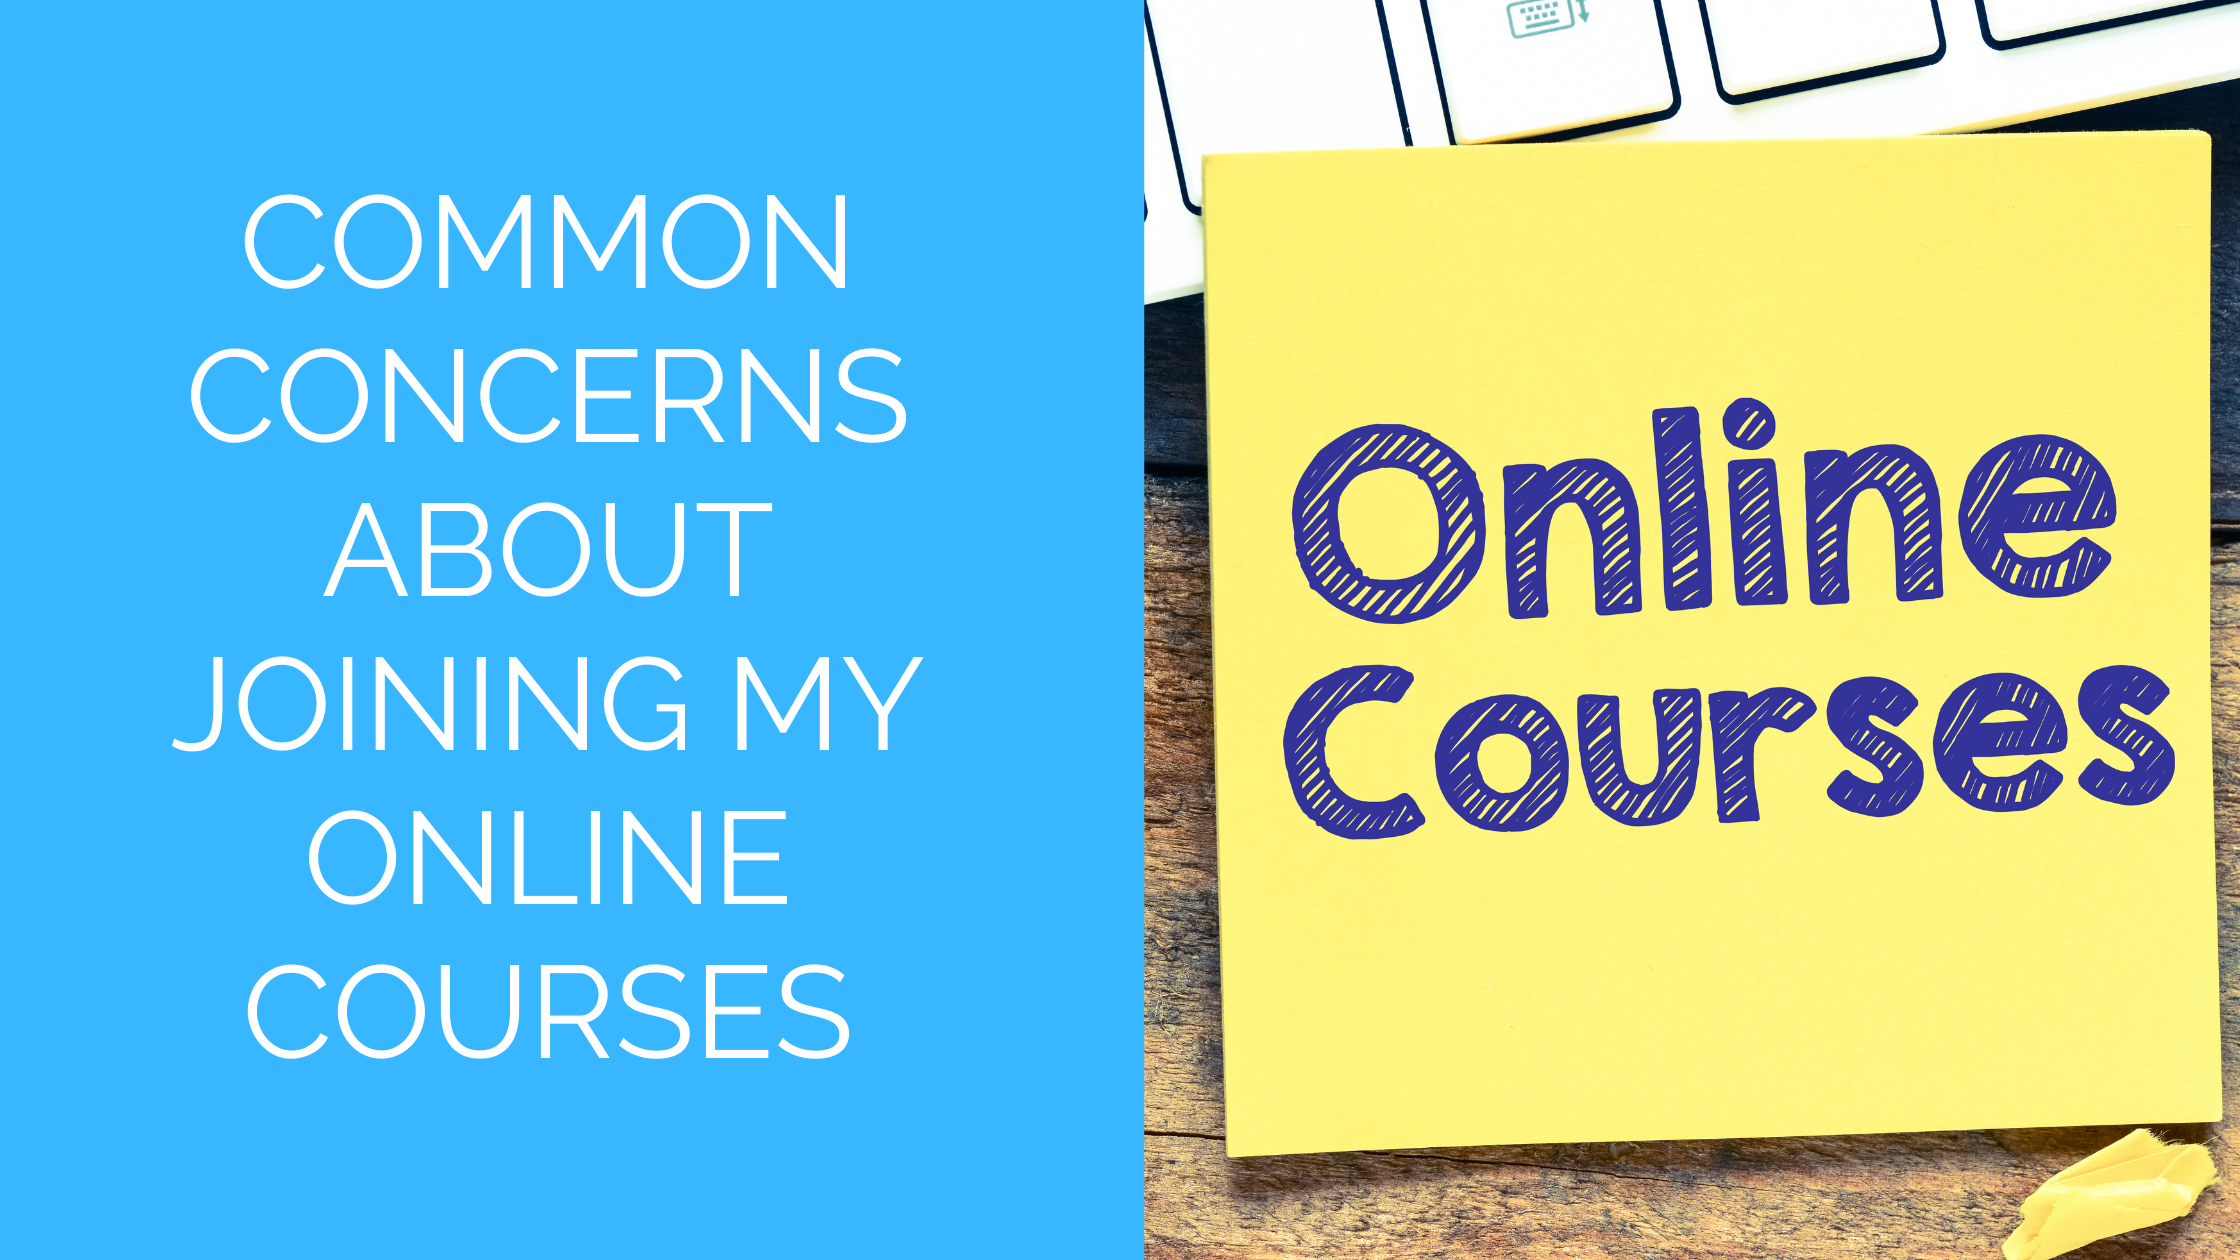 Common concerns about joining my online courses